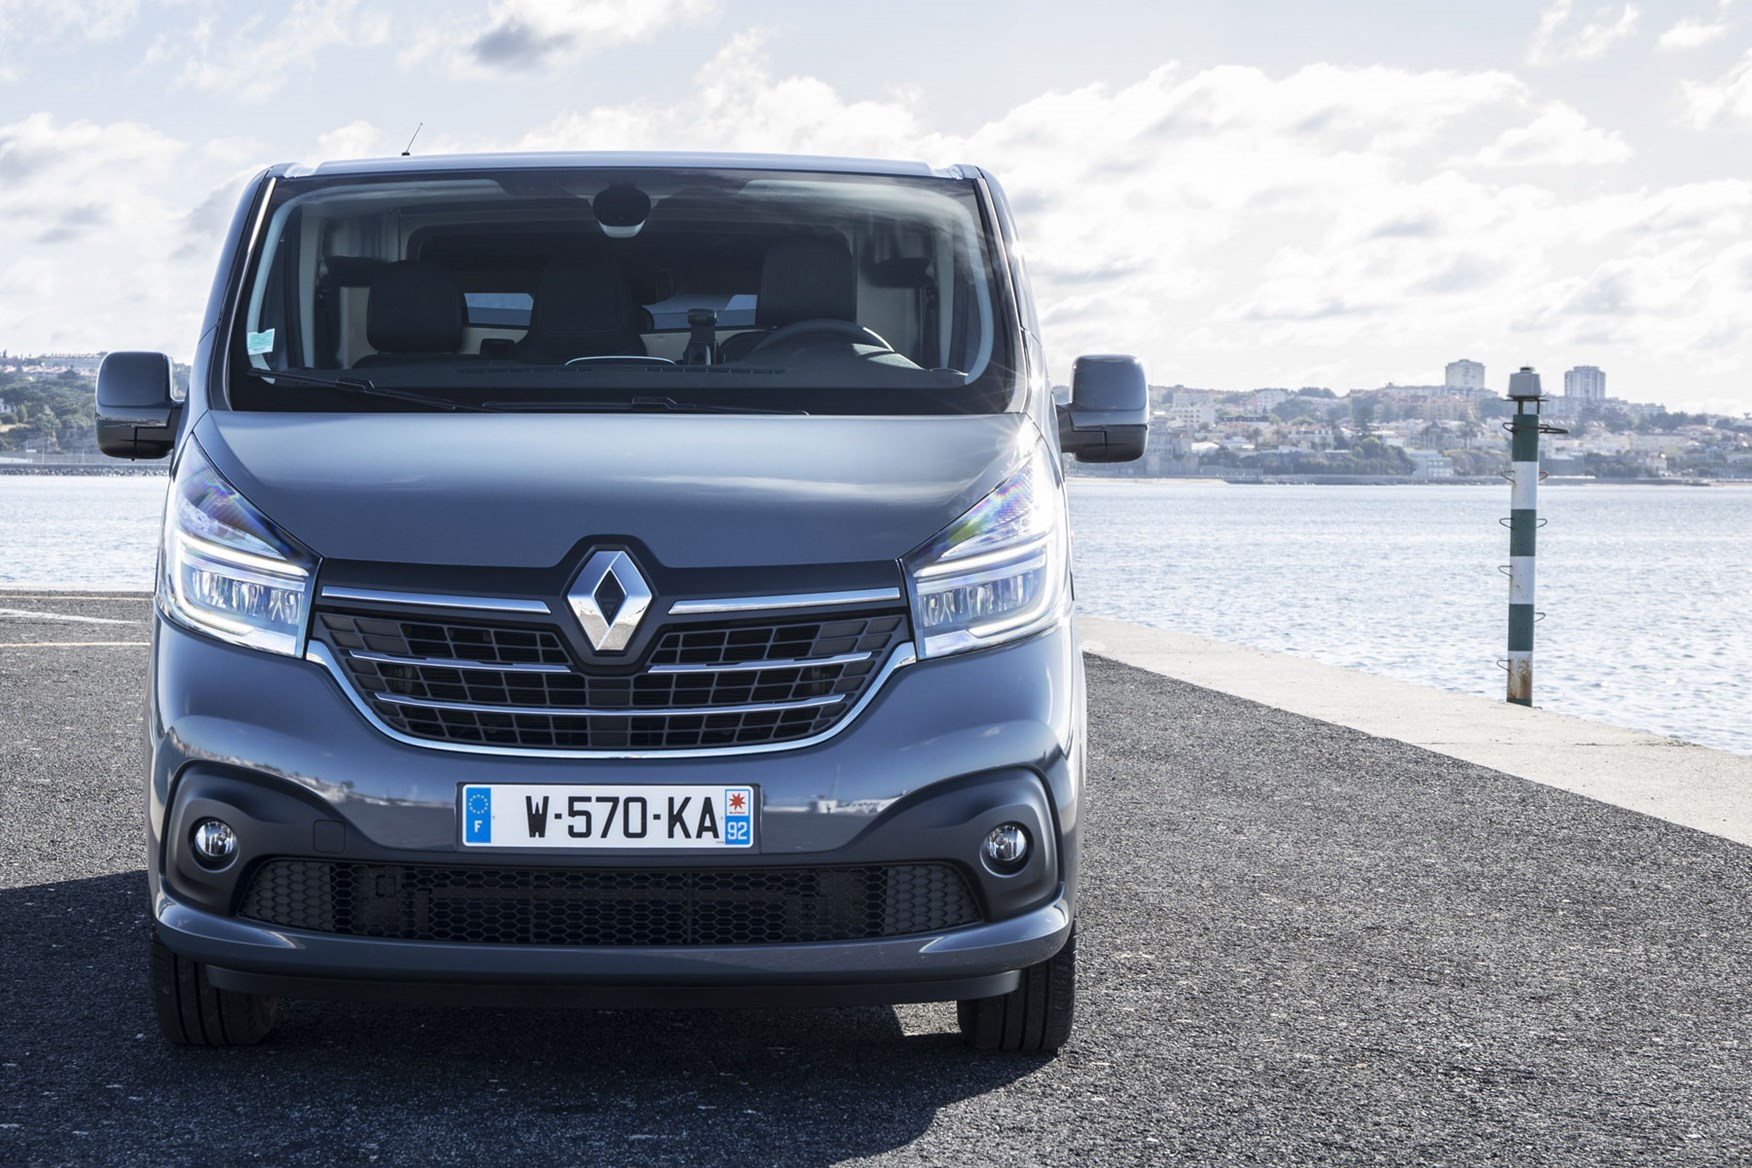 Renault Trafic review - 2019 facelift, dead-on front view, grey